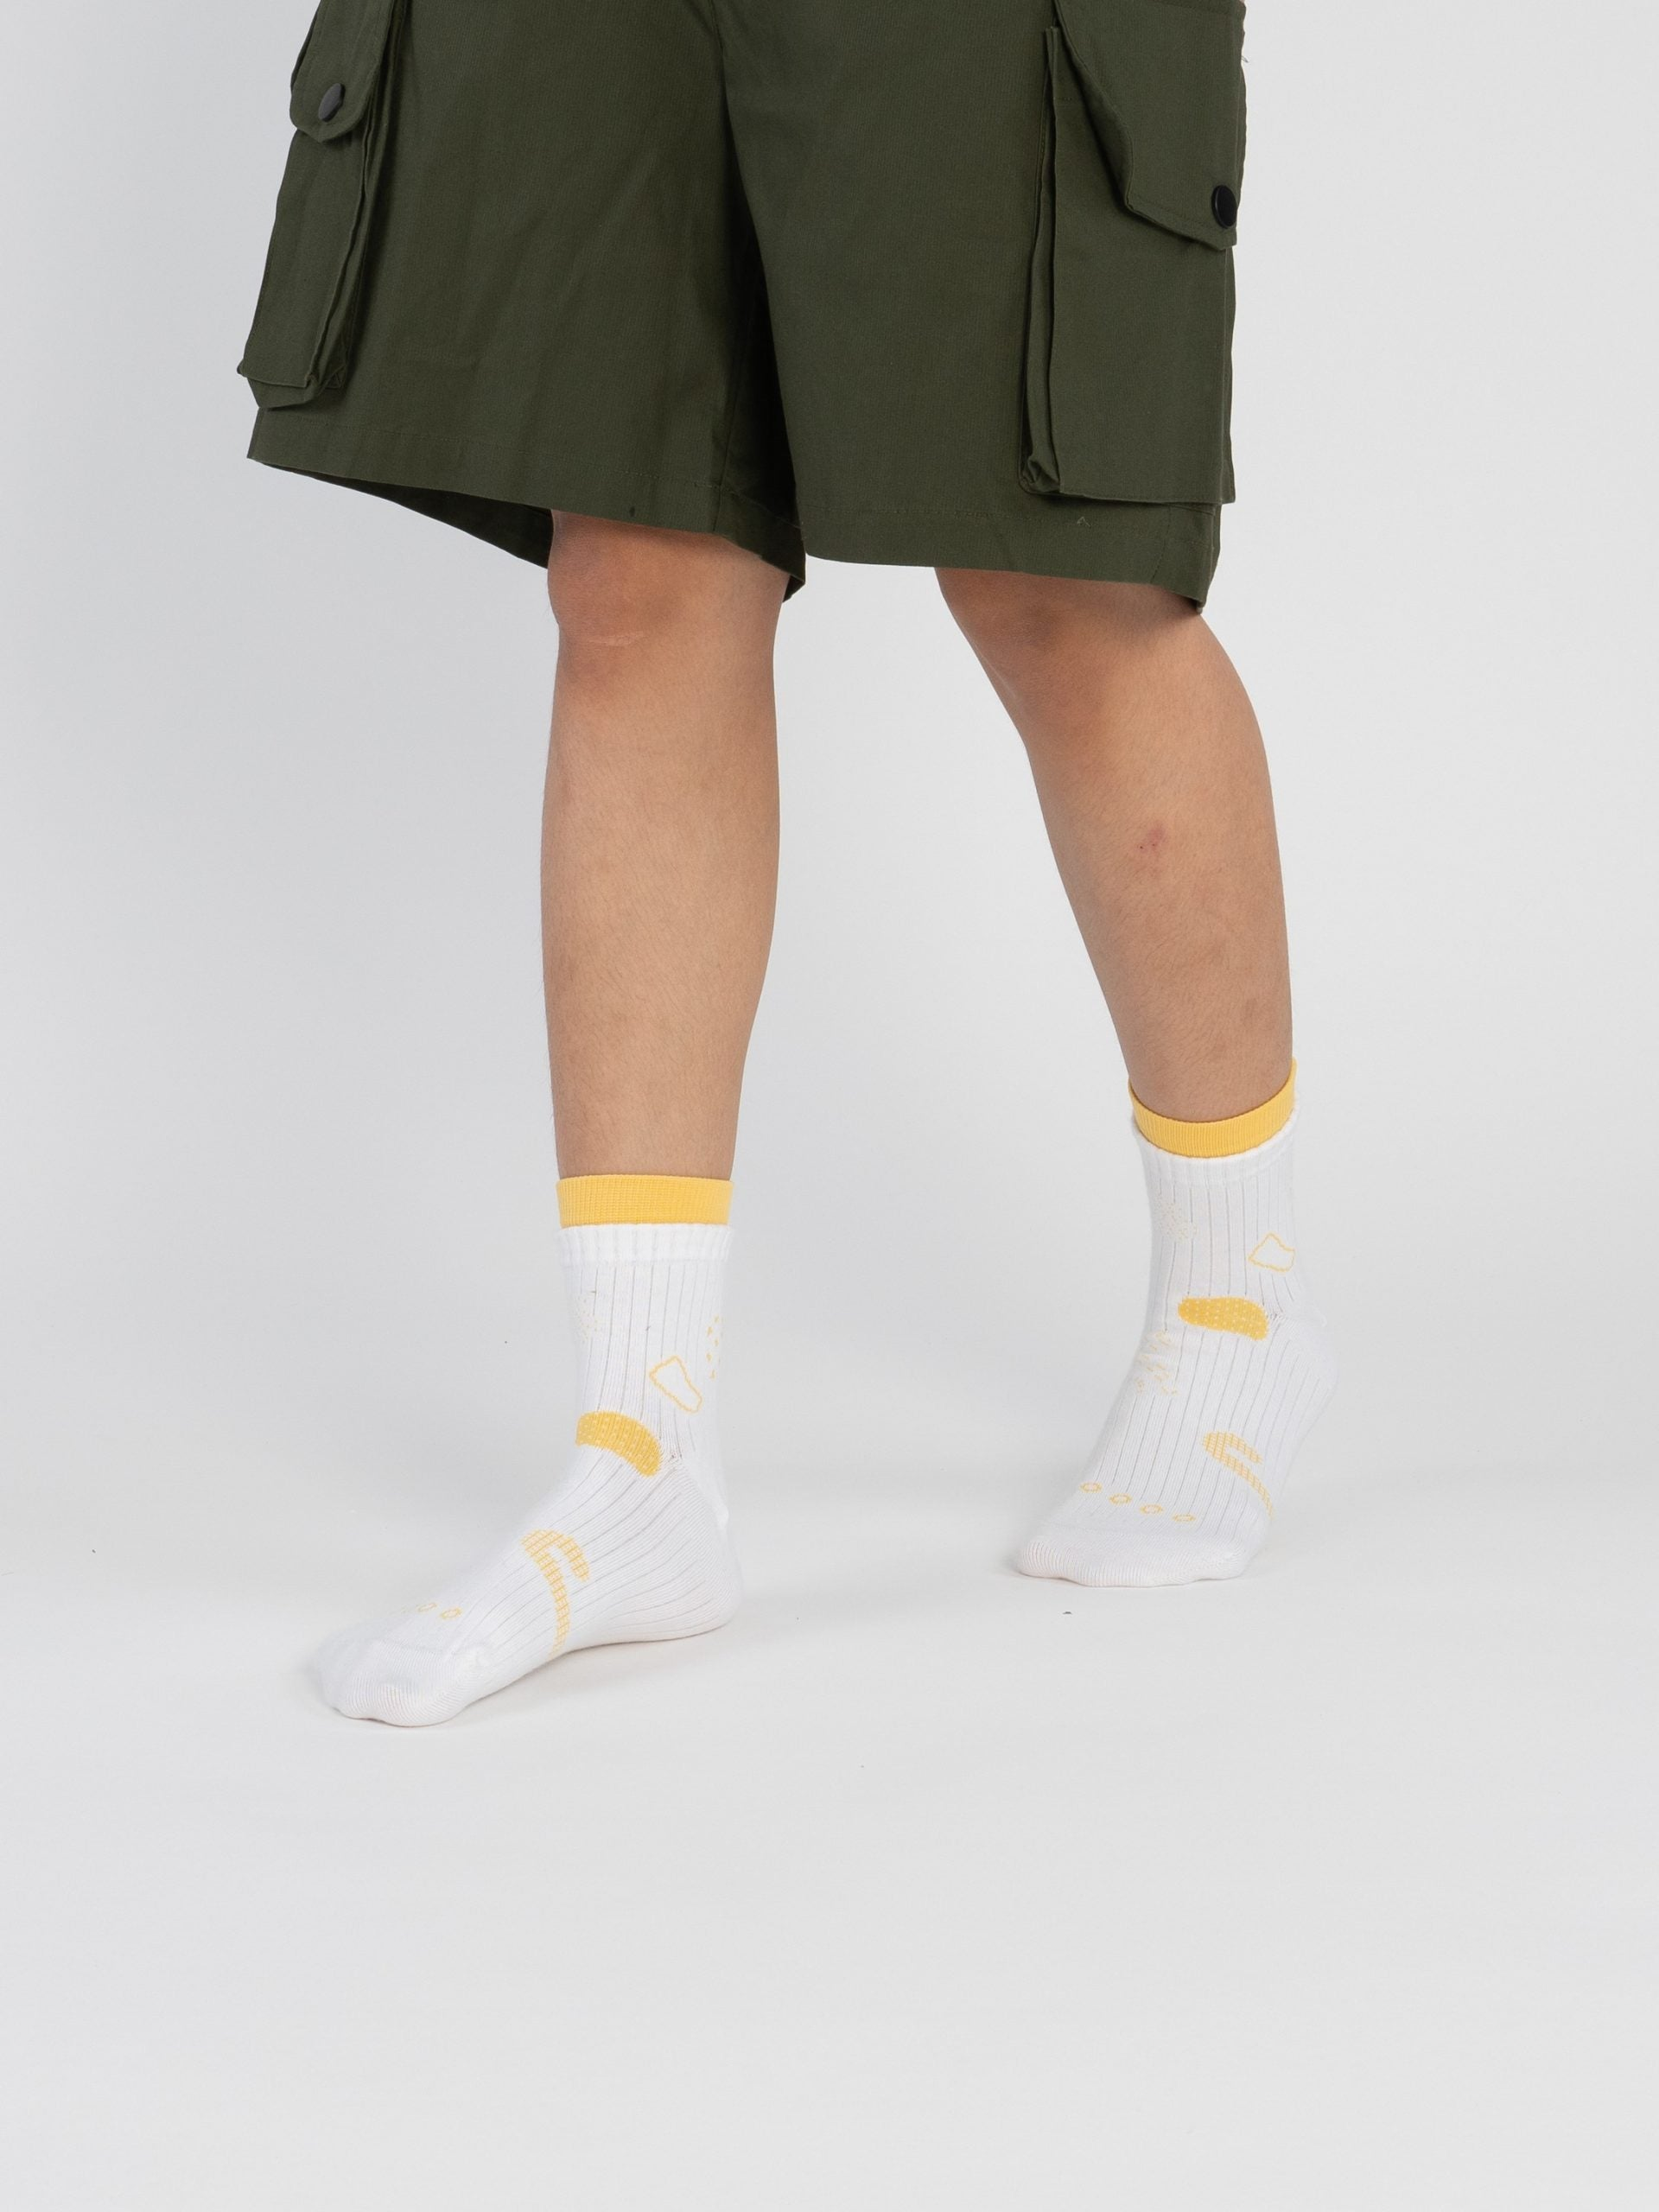 Bumi : Grow - Off White Socks